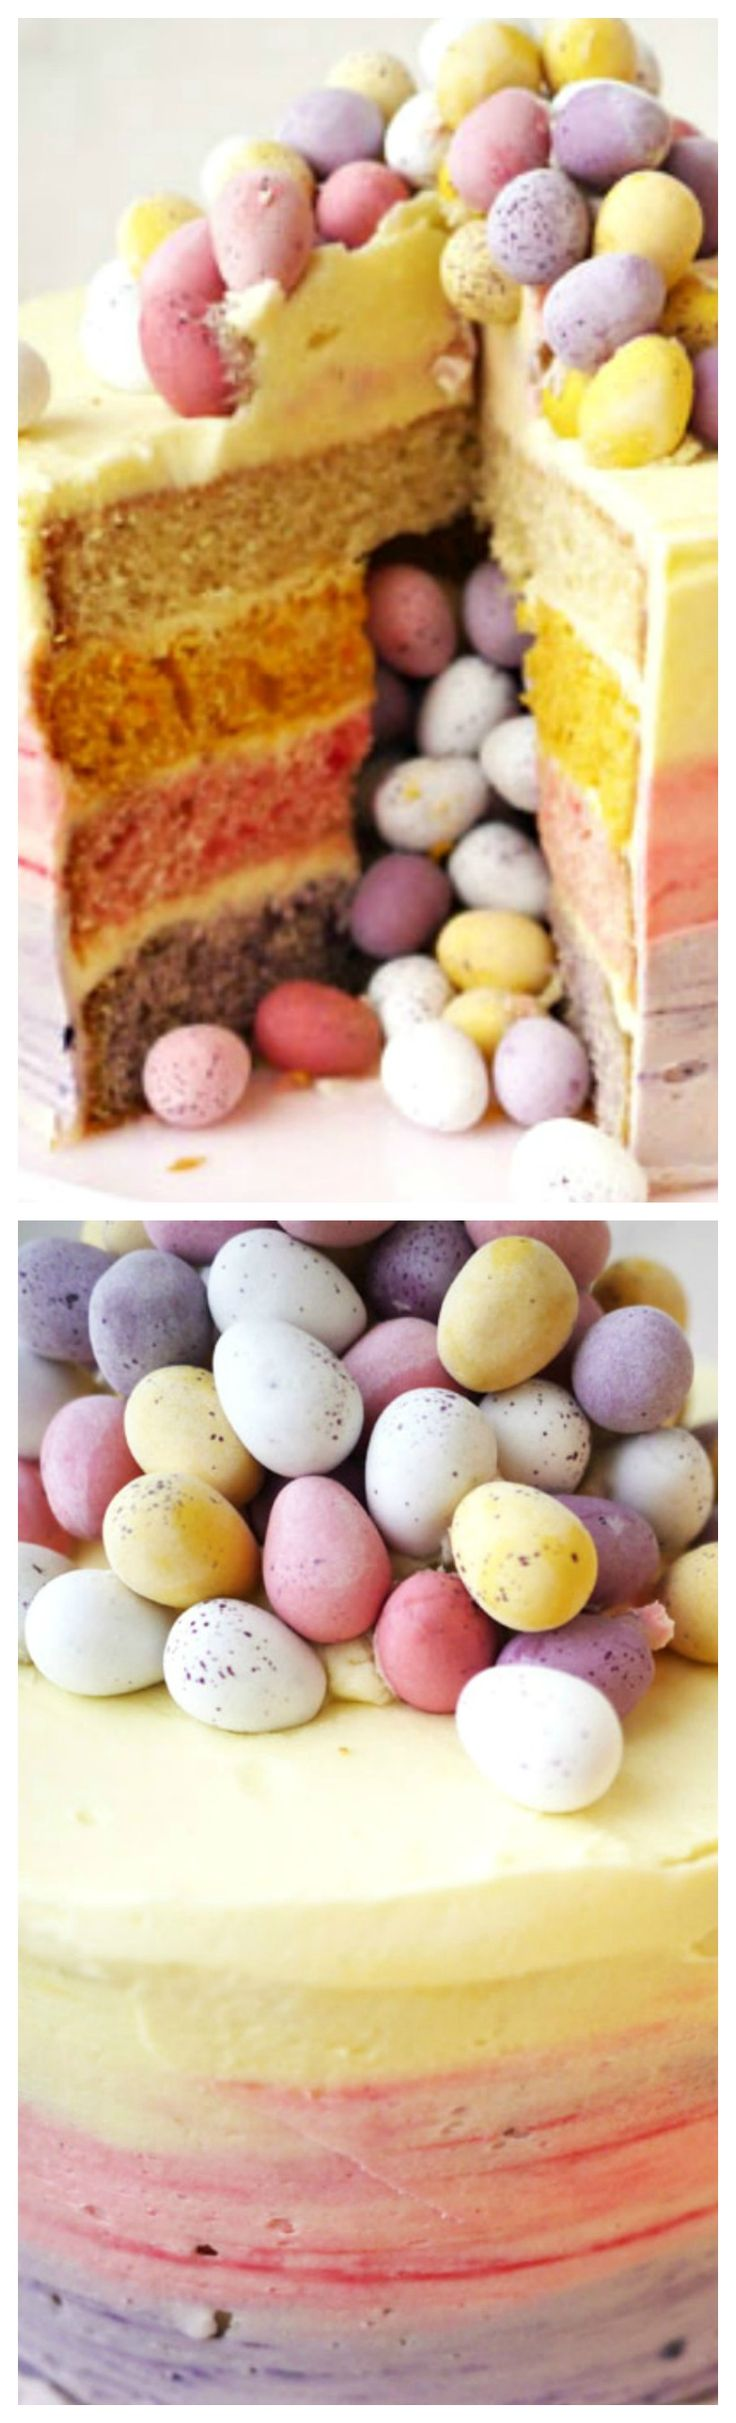 Mini Egg Ombre Pinata Layer Cake ~ The cake would make the perfect show-stopper for an Easter celebration. It's a whopper but it's surprisingly simple.